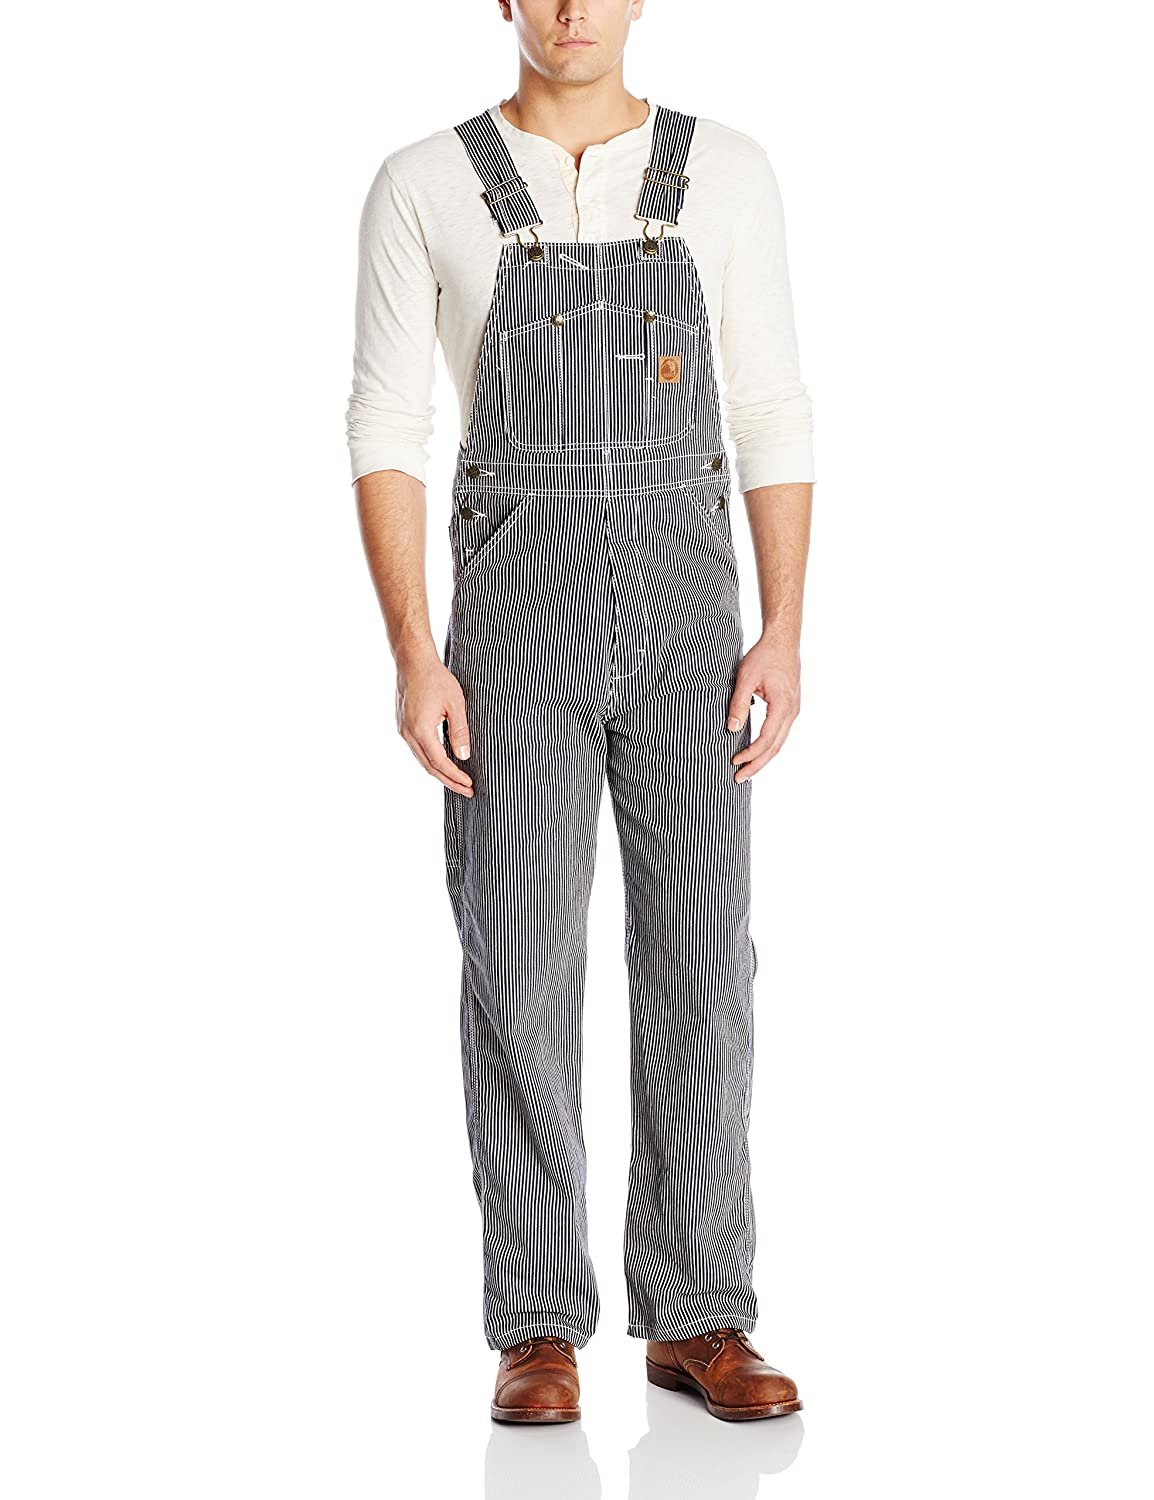 Men's Vintage Workwear Inspired Clothing Berne Mens Original Unlined Bib Overall $49.99 AT vintagedancer.com